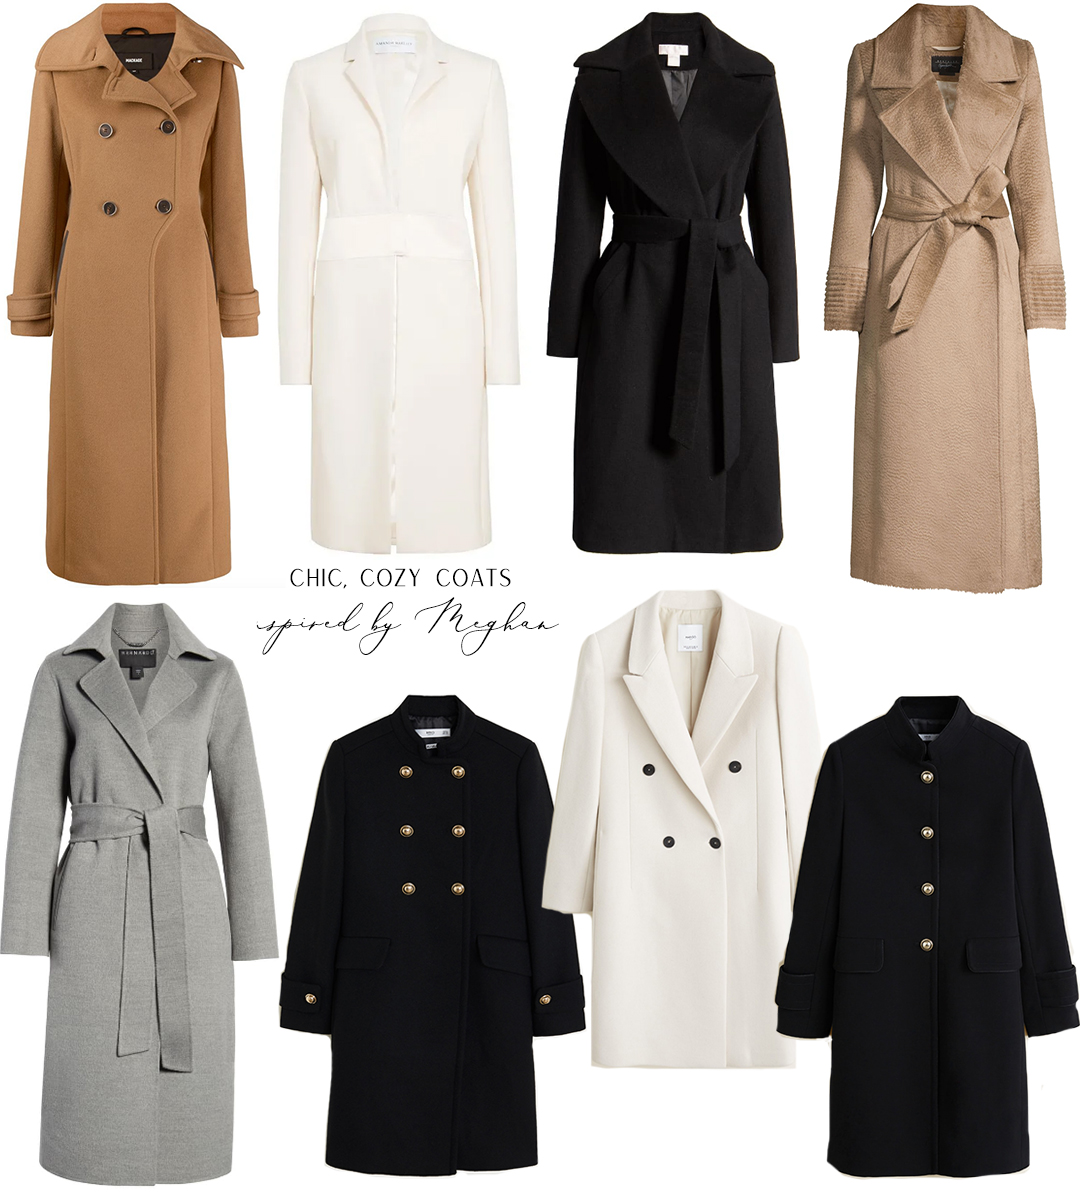 INSPIRED BY MEGHAN // CHIC, COZY COATS